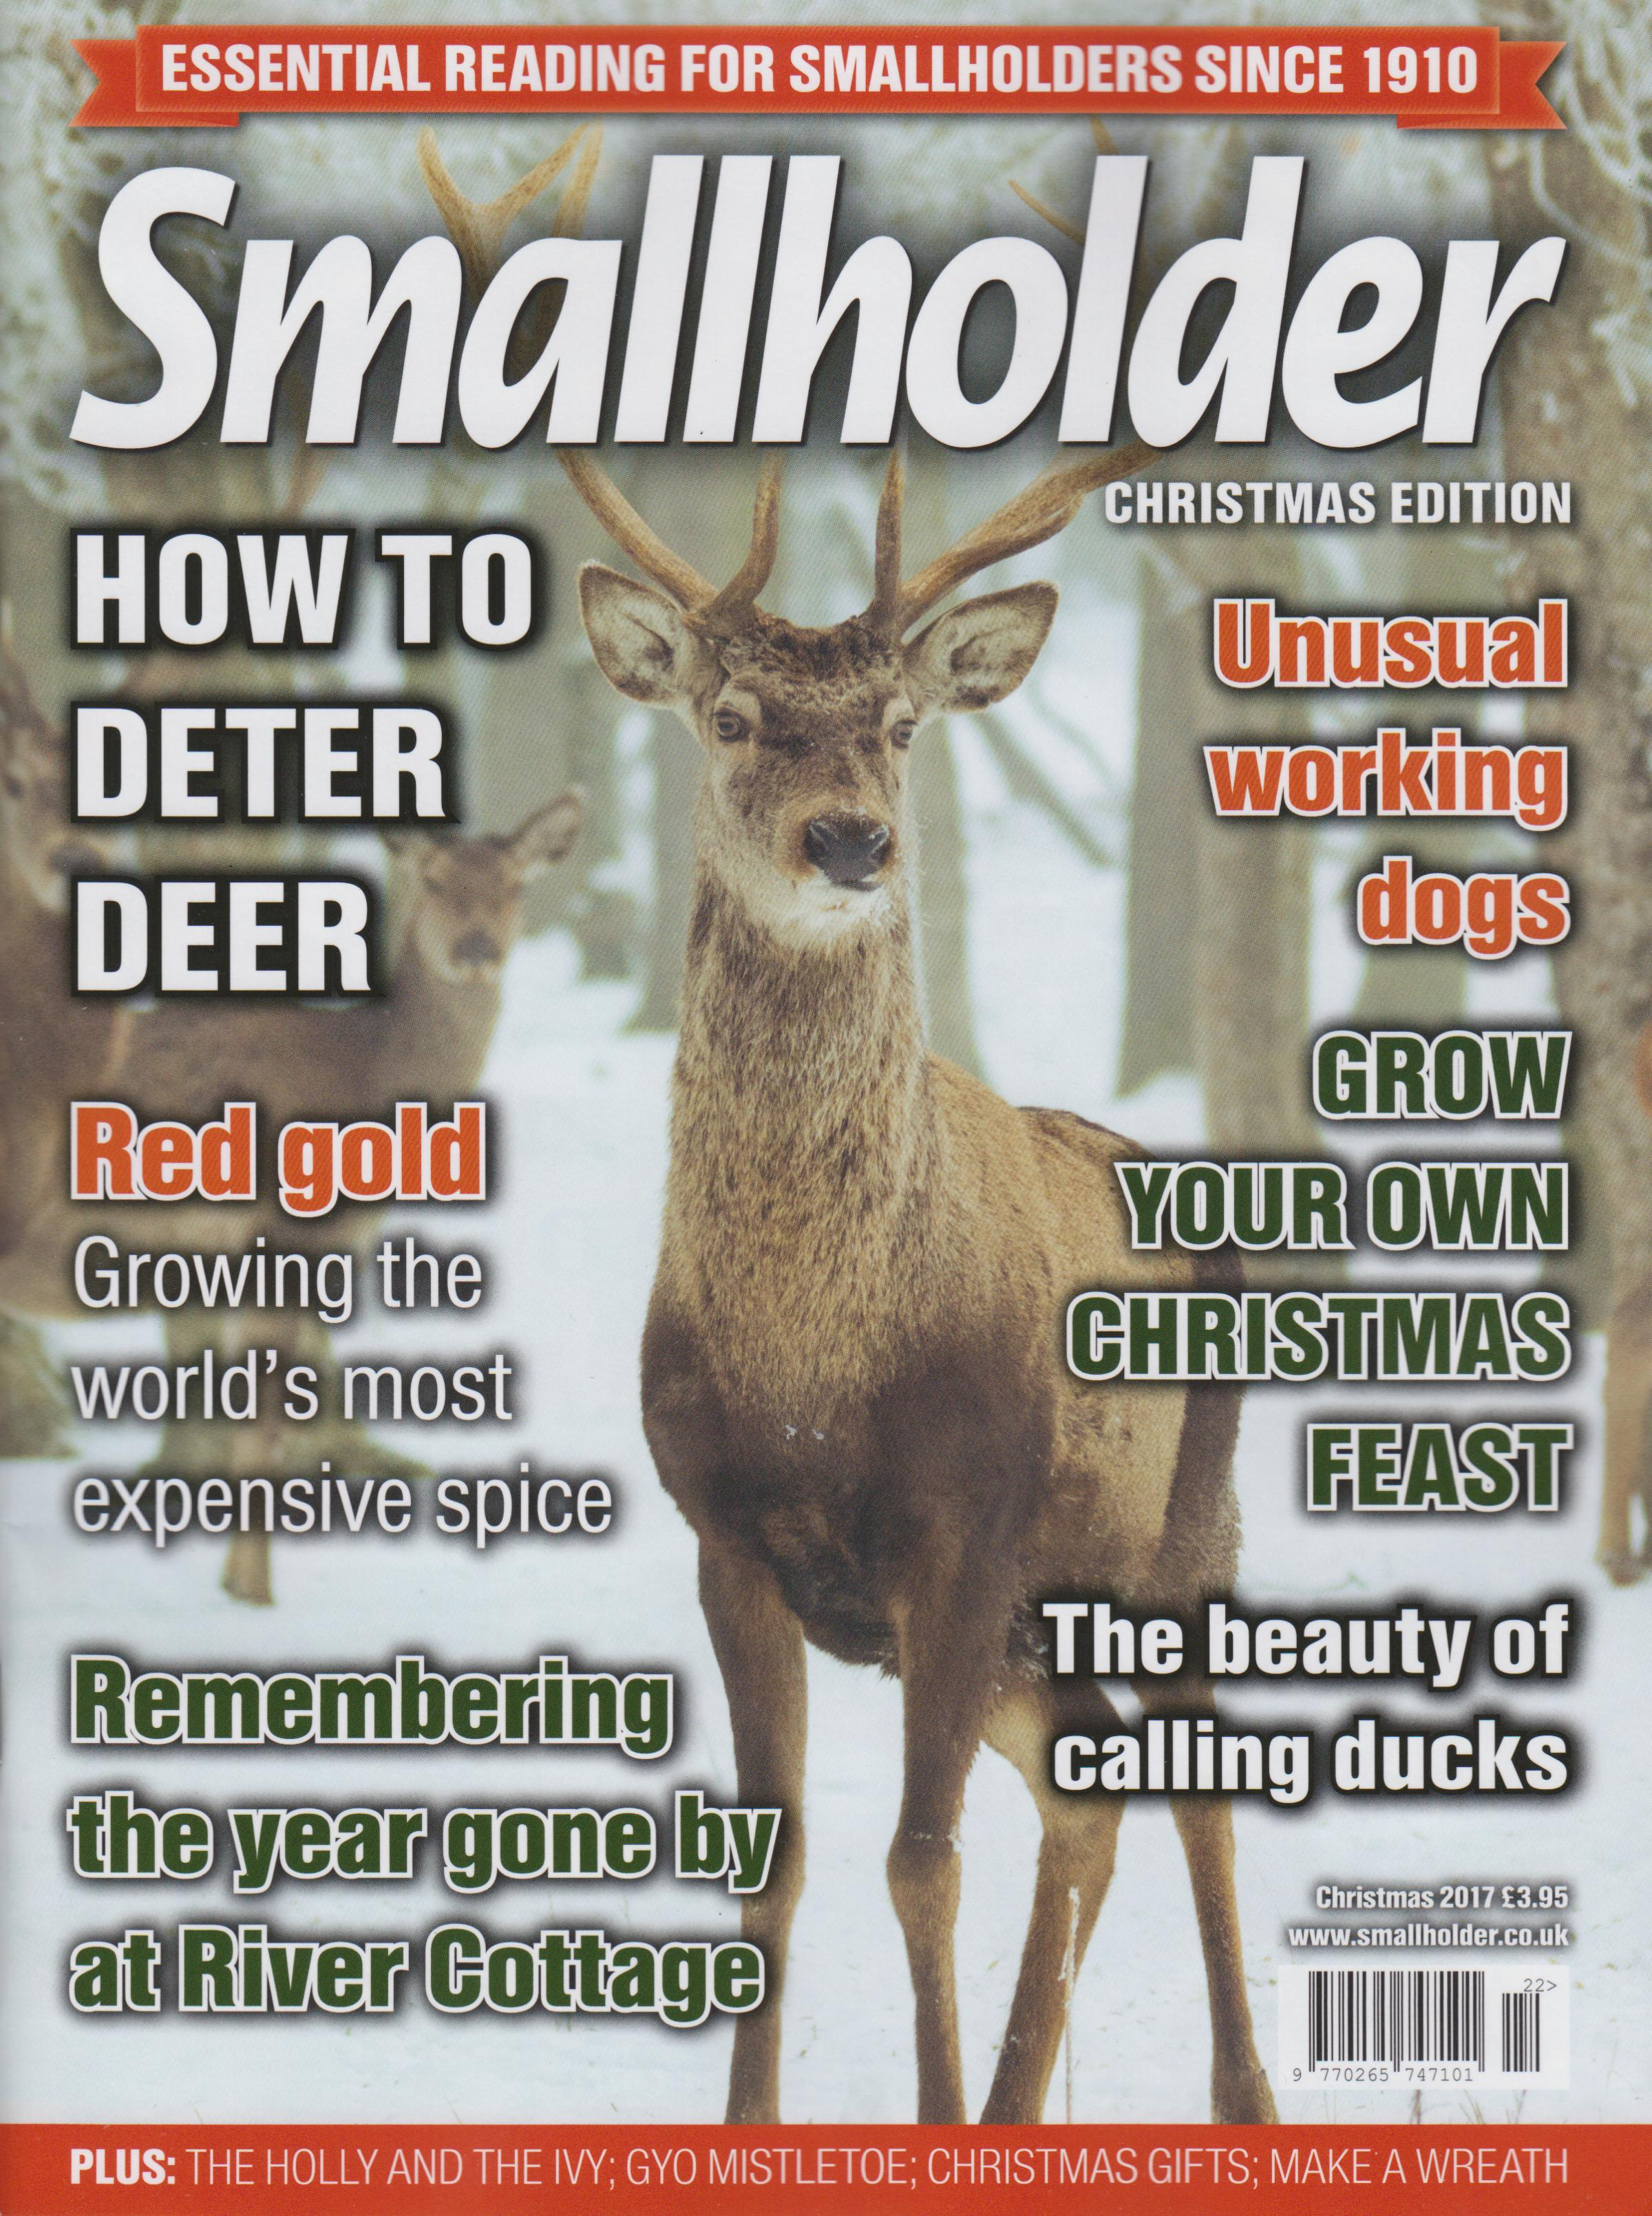 The Christmas edition of Smallholder magazine is positively fizzing with festive spirit